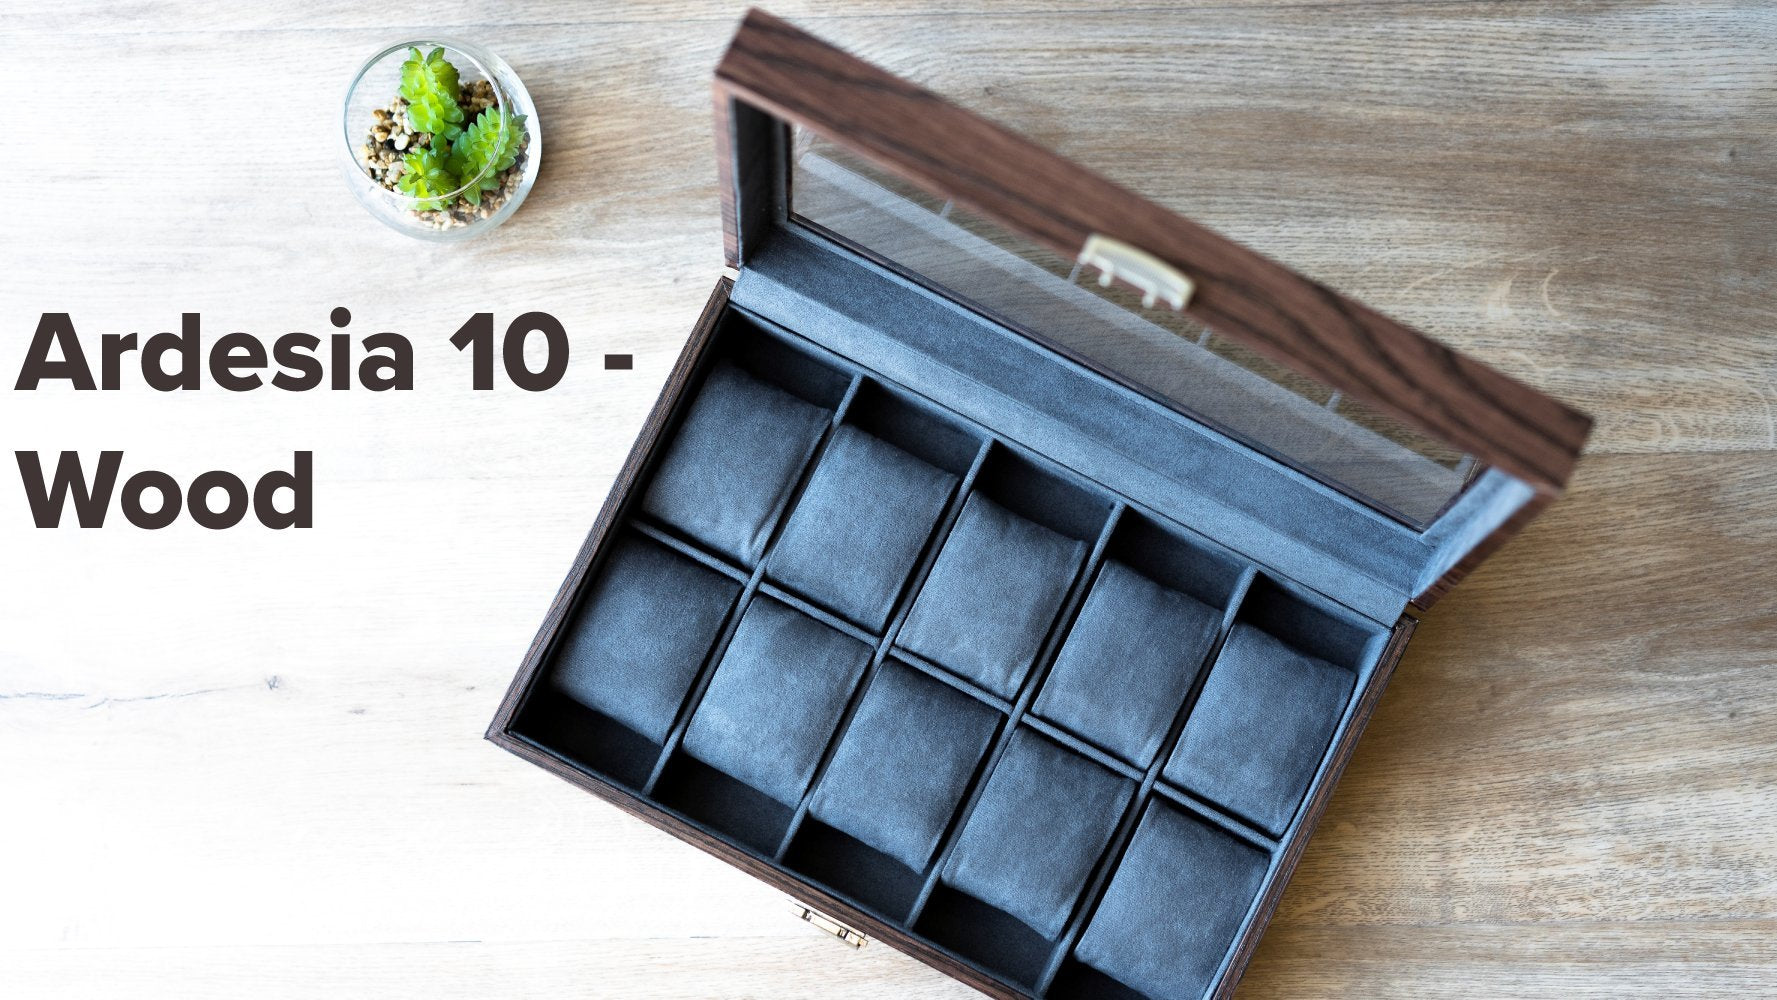 a7b3ddc45b2 Watch Boxes and Jewelry Cases for Men and Women - Caddy Bay Collection